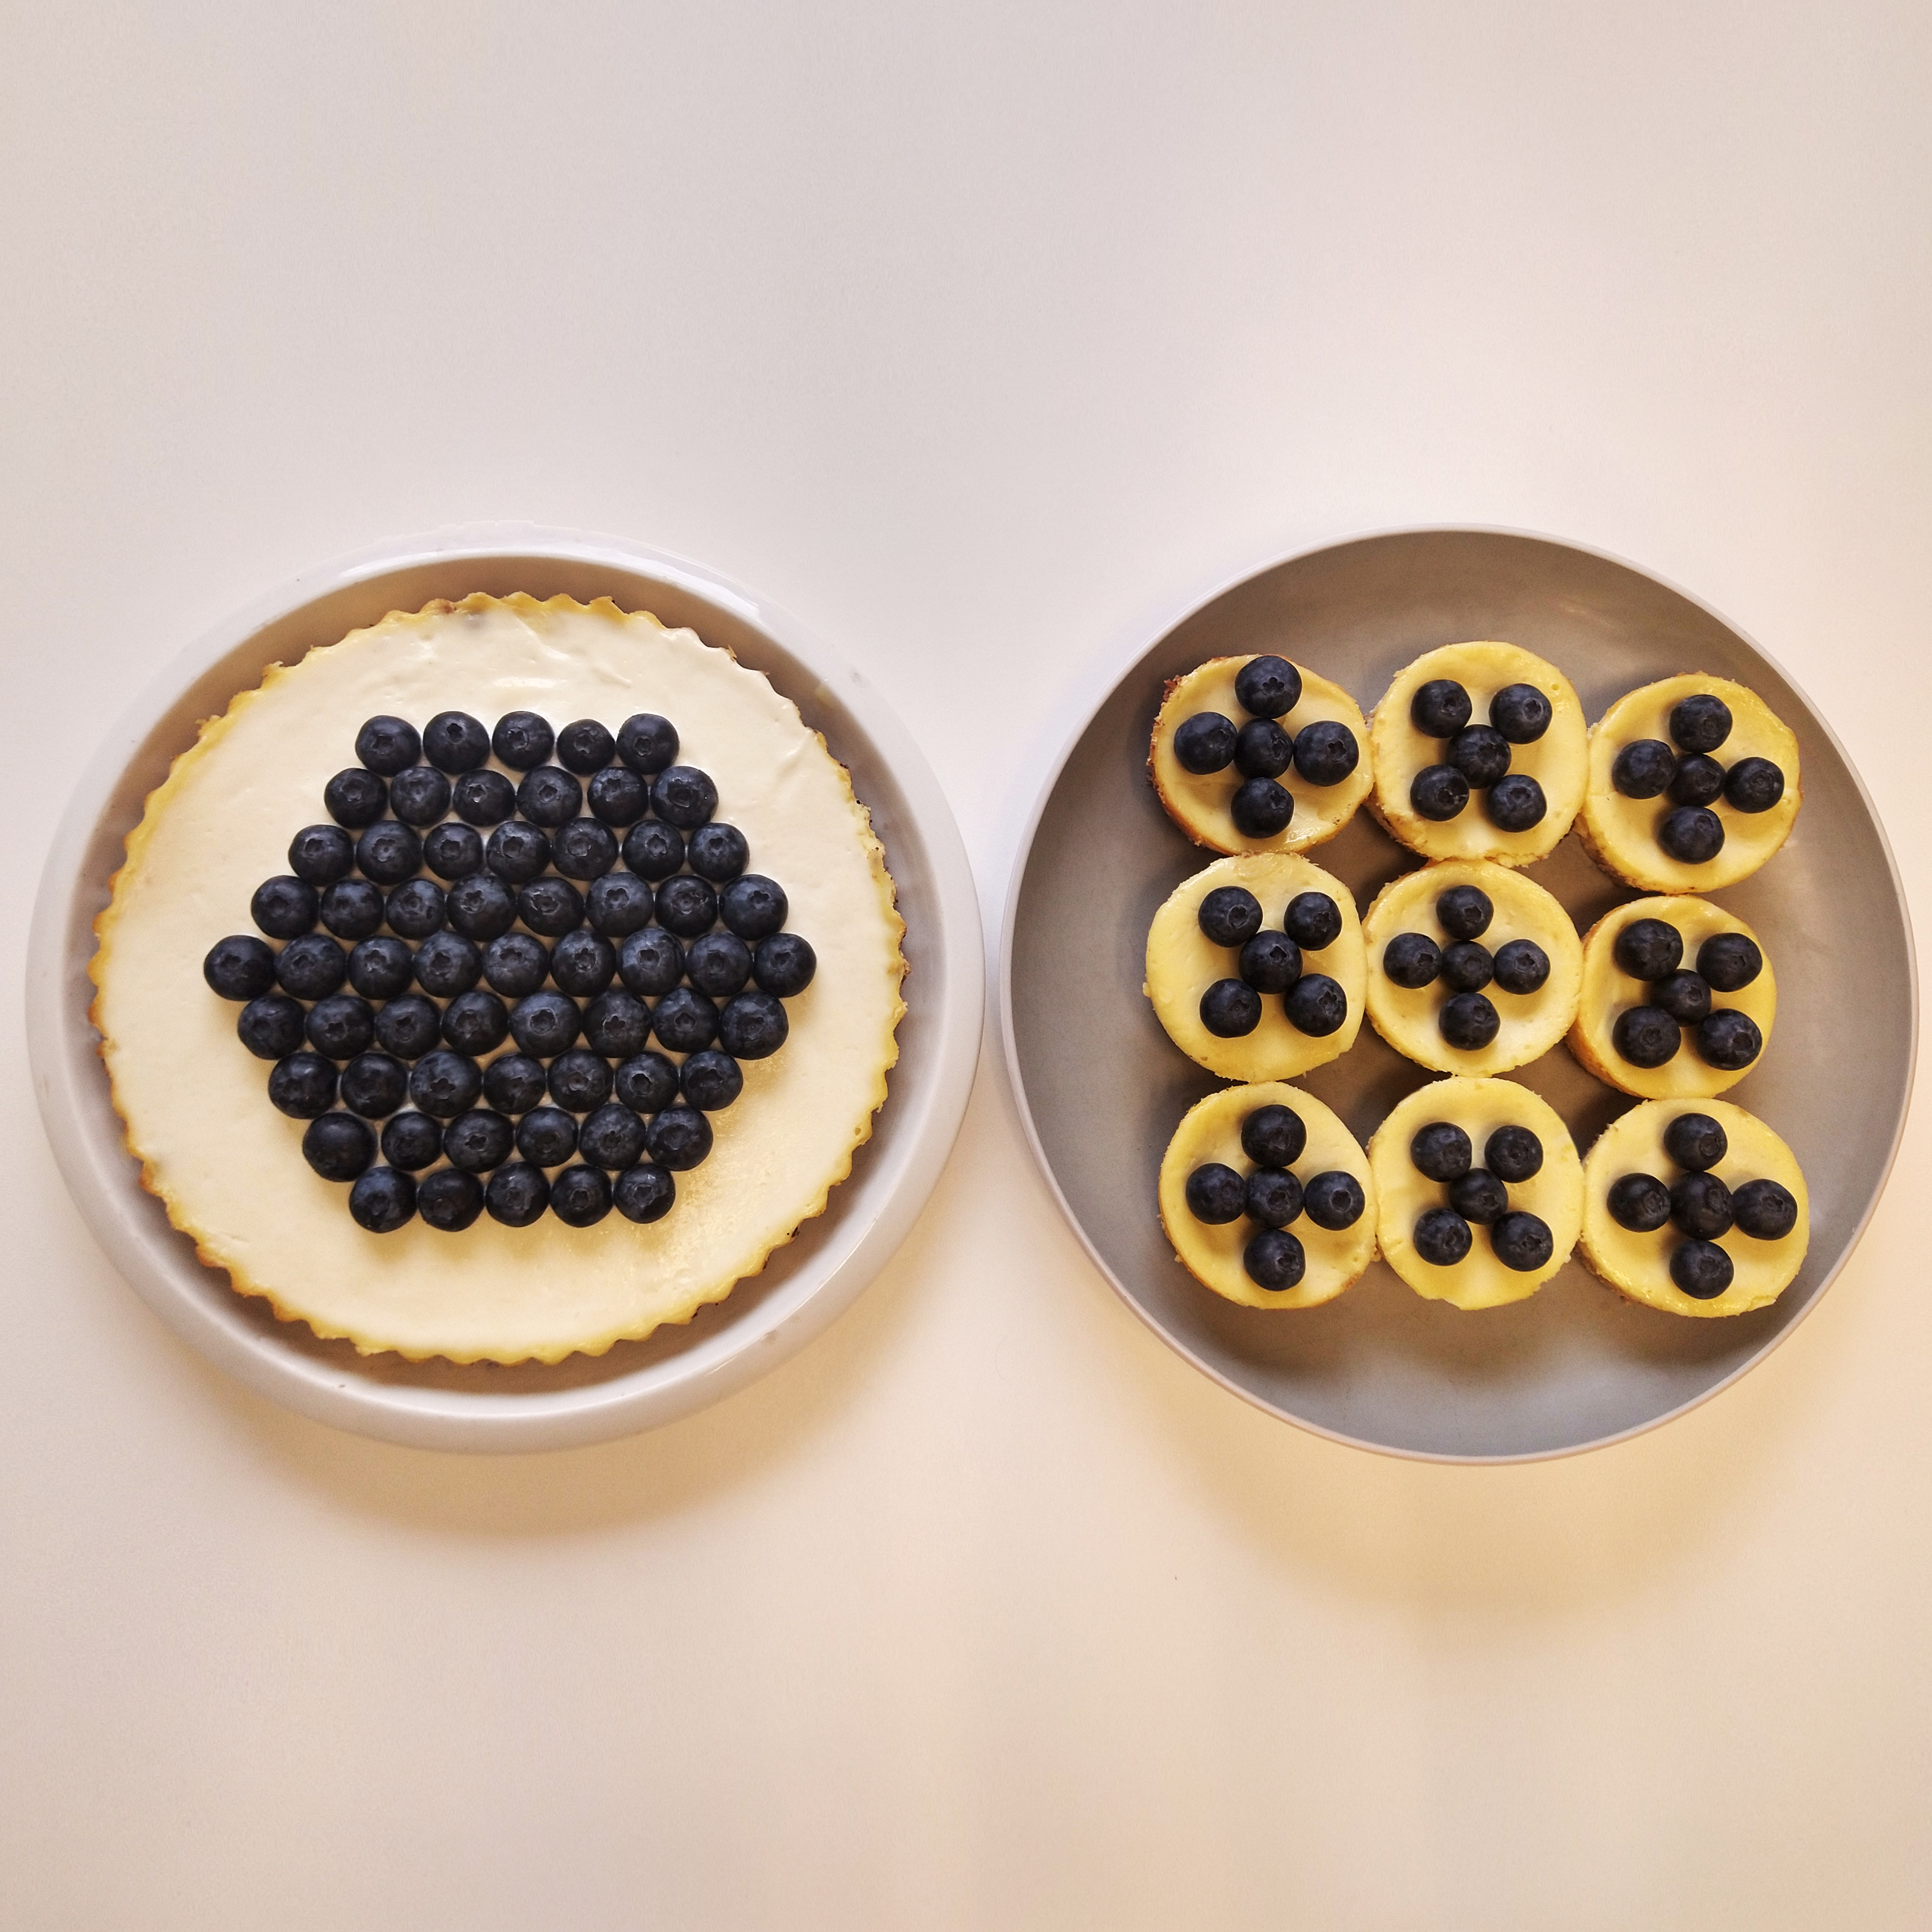 Cheesecakes packed with blueberries.